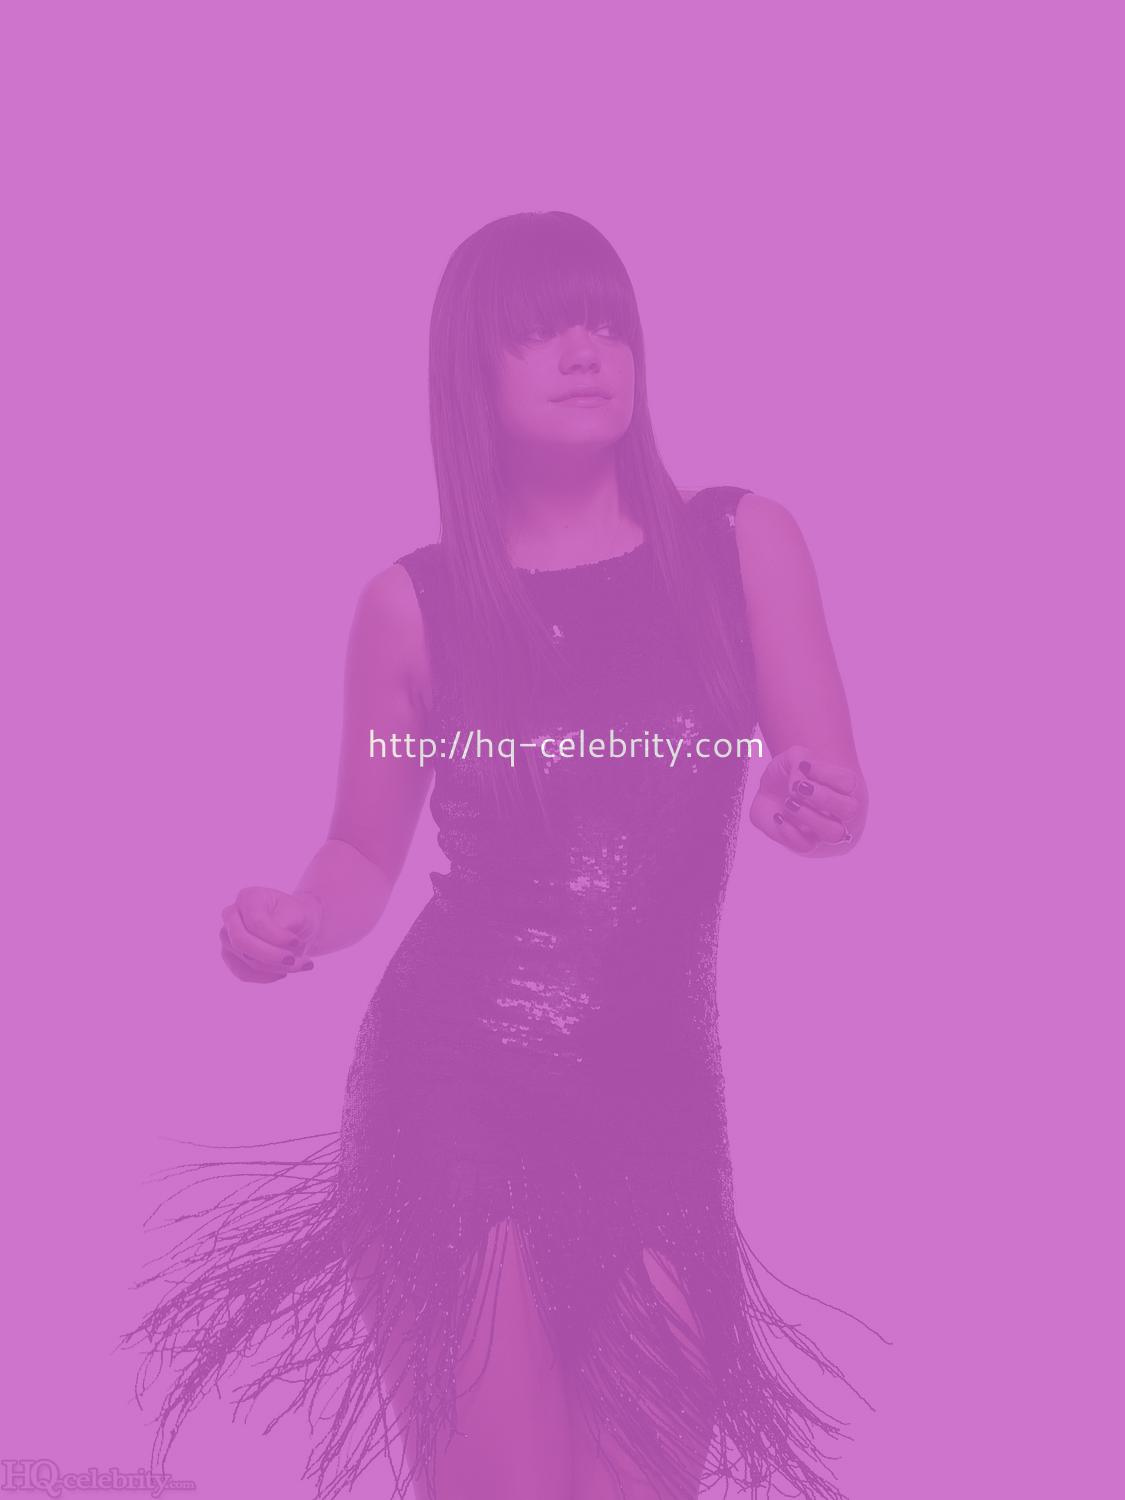 Lily Allen is sexy in fun new photo shoot.